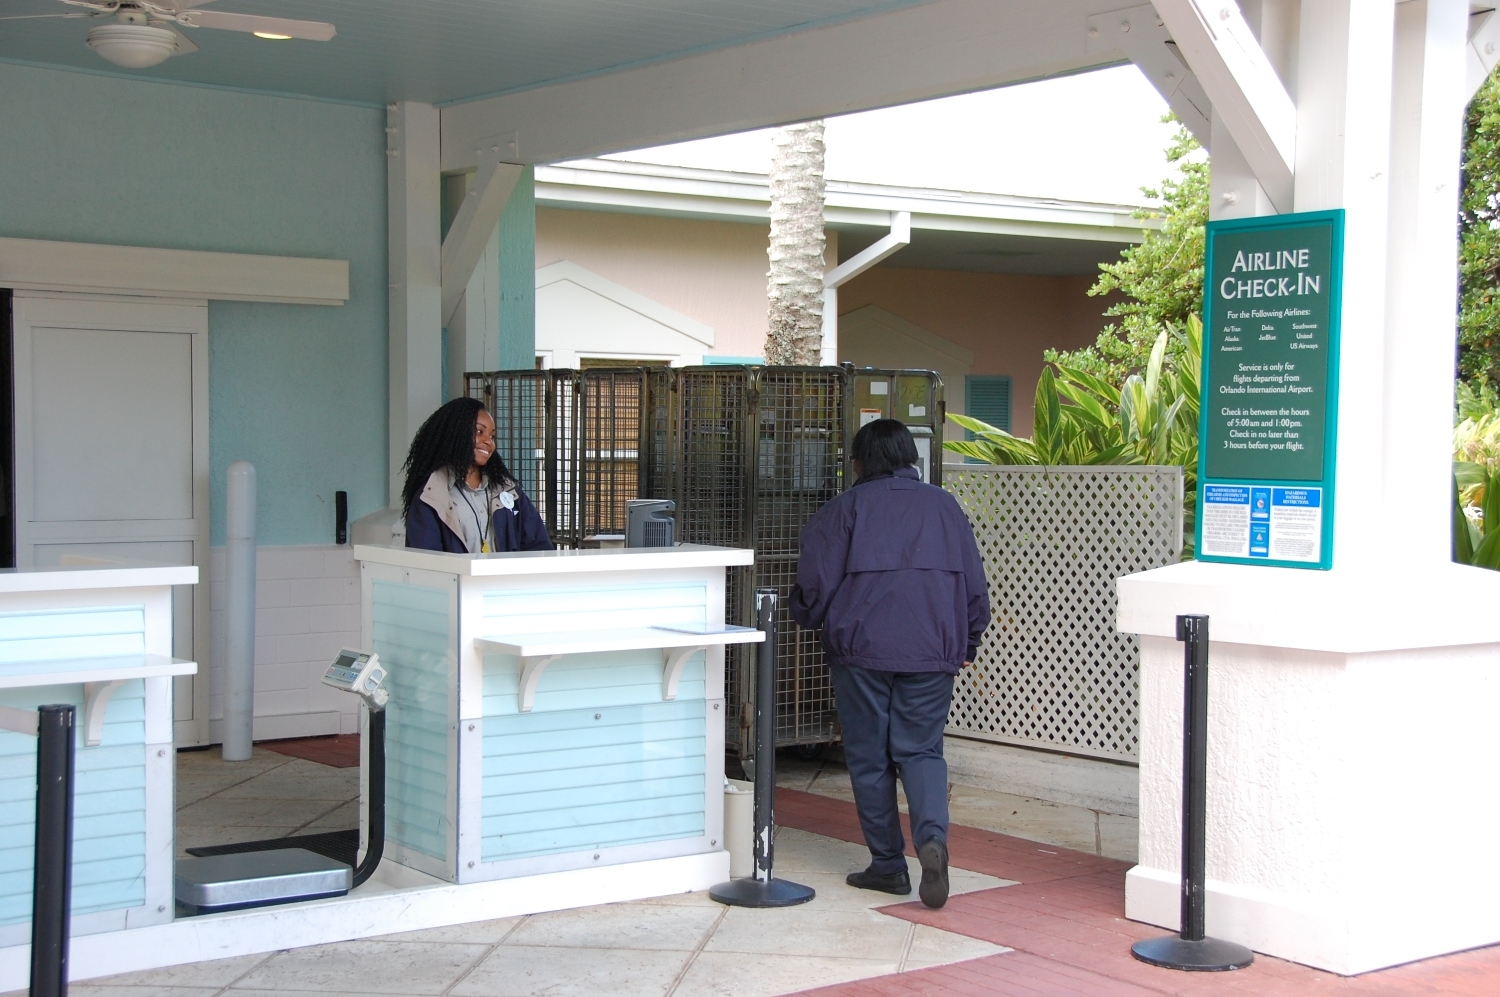 Old Key West - Disney's Magical Express Airline Checkin desk